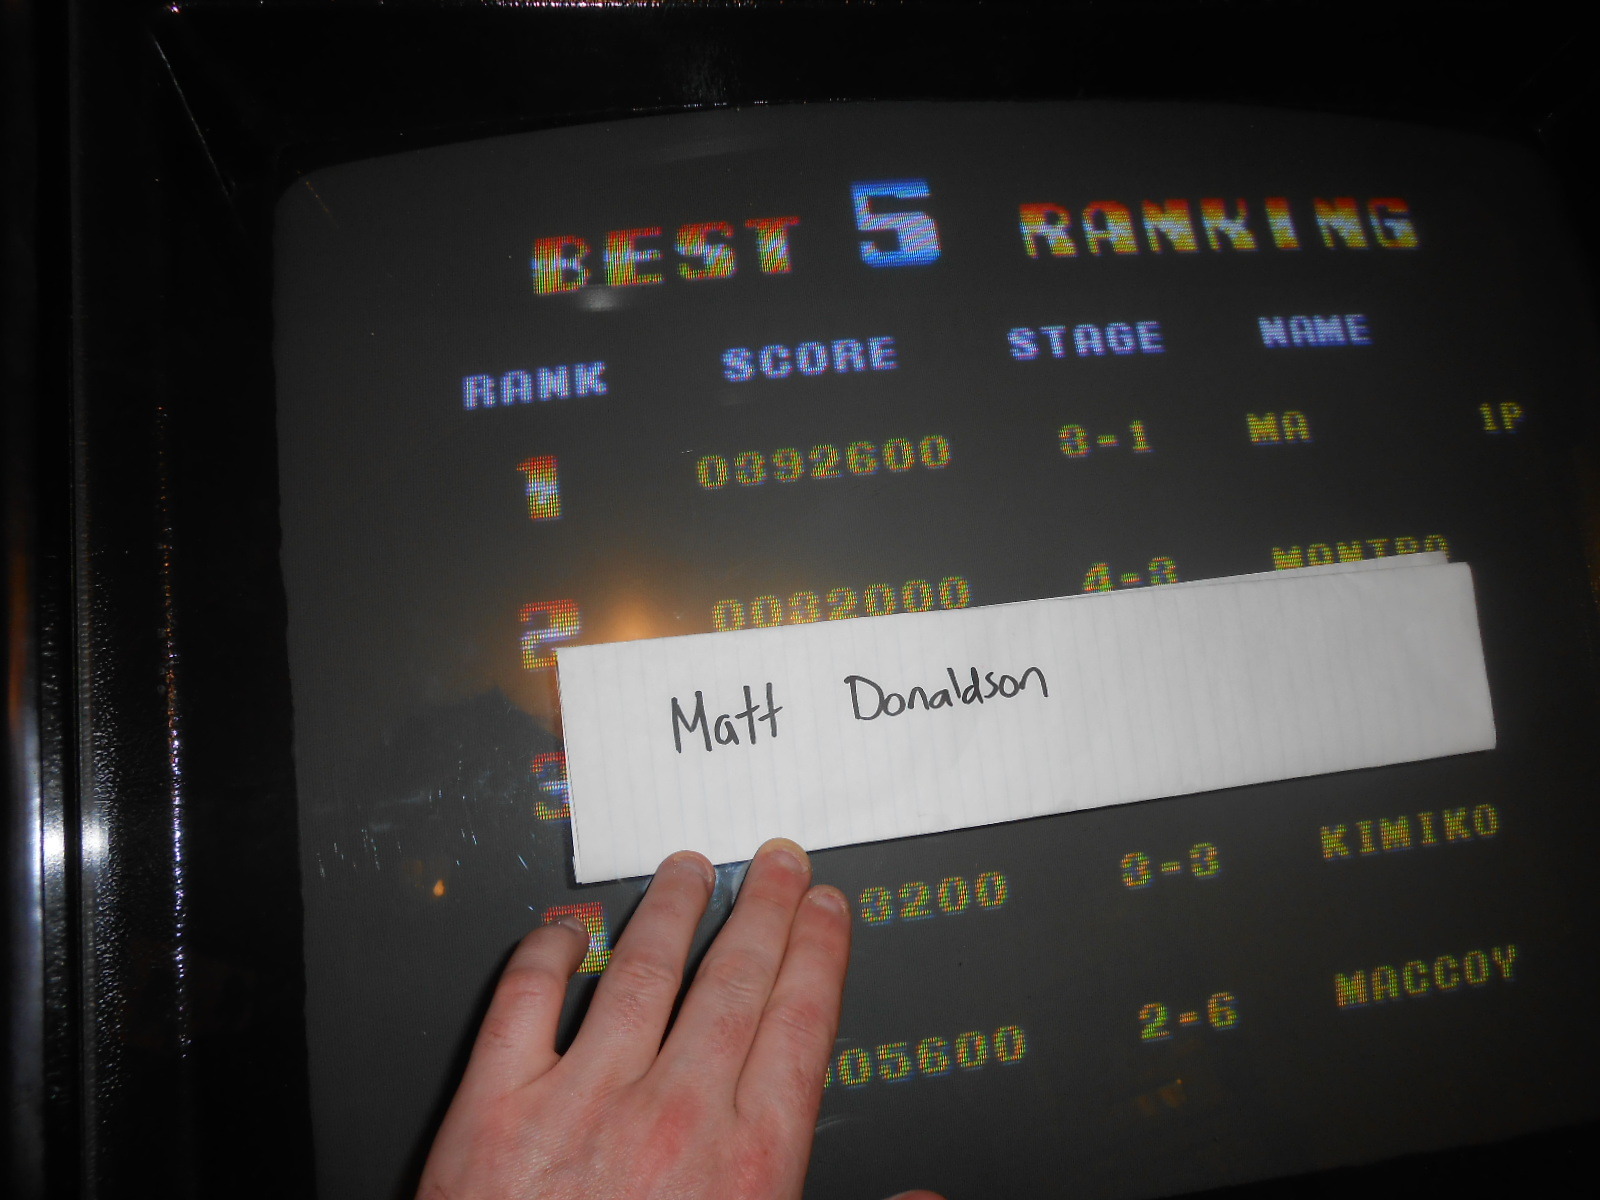 MattDonaldson: Bomber Man World [bbmanw] (Arcade Emulated / M.A.M.E.) 392,600 points on 2015-08-19 23:19:36